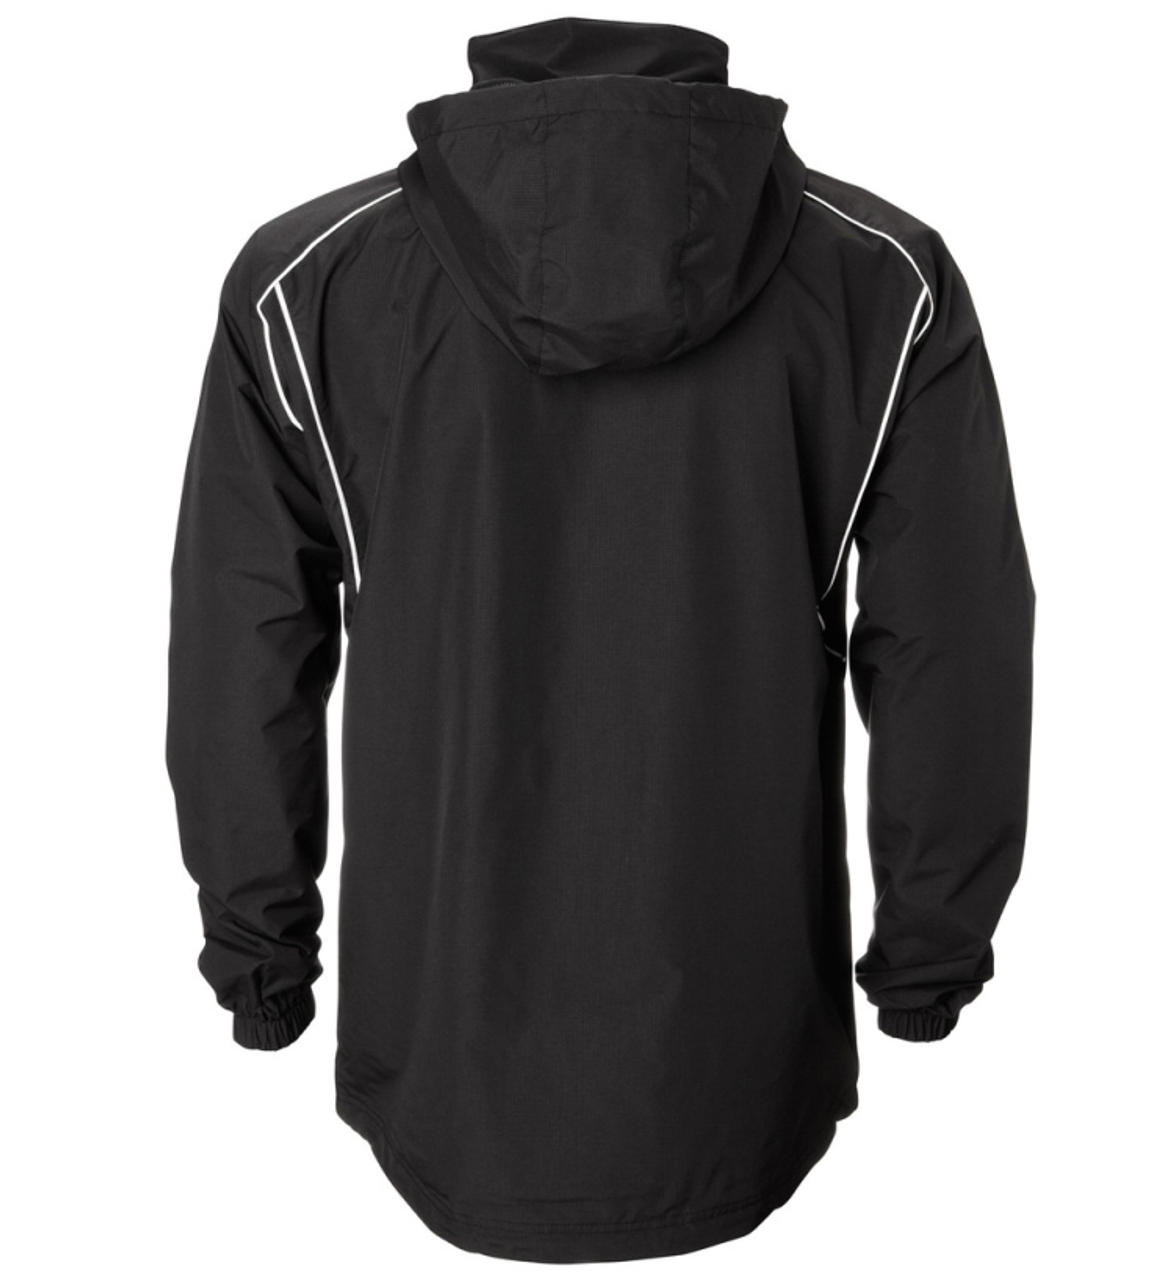 Classic Rain jacket shown with the tuck-away hood shown out.